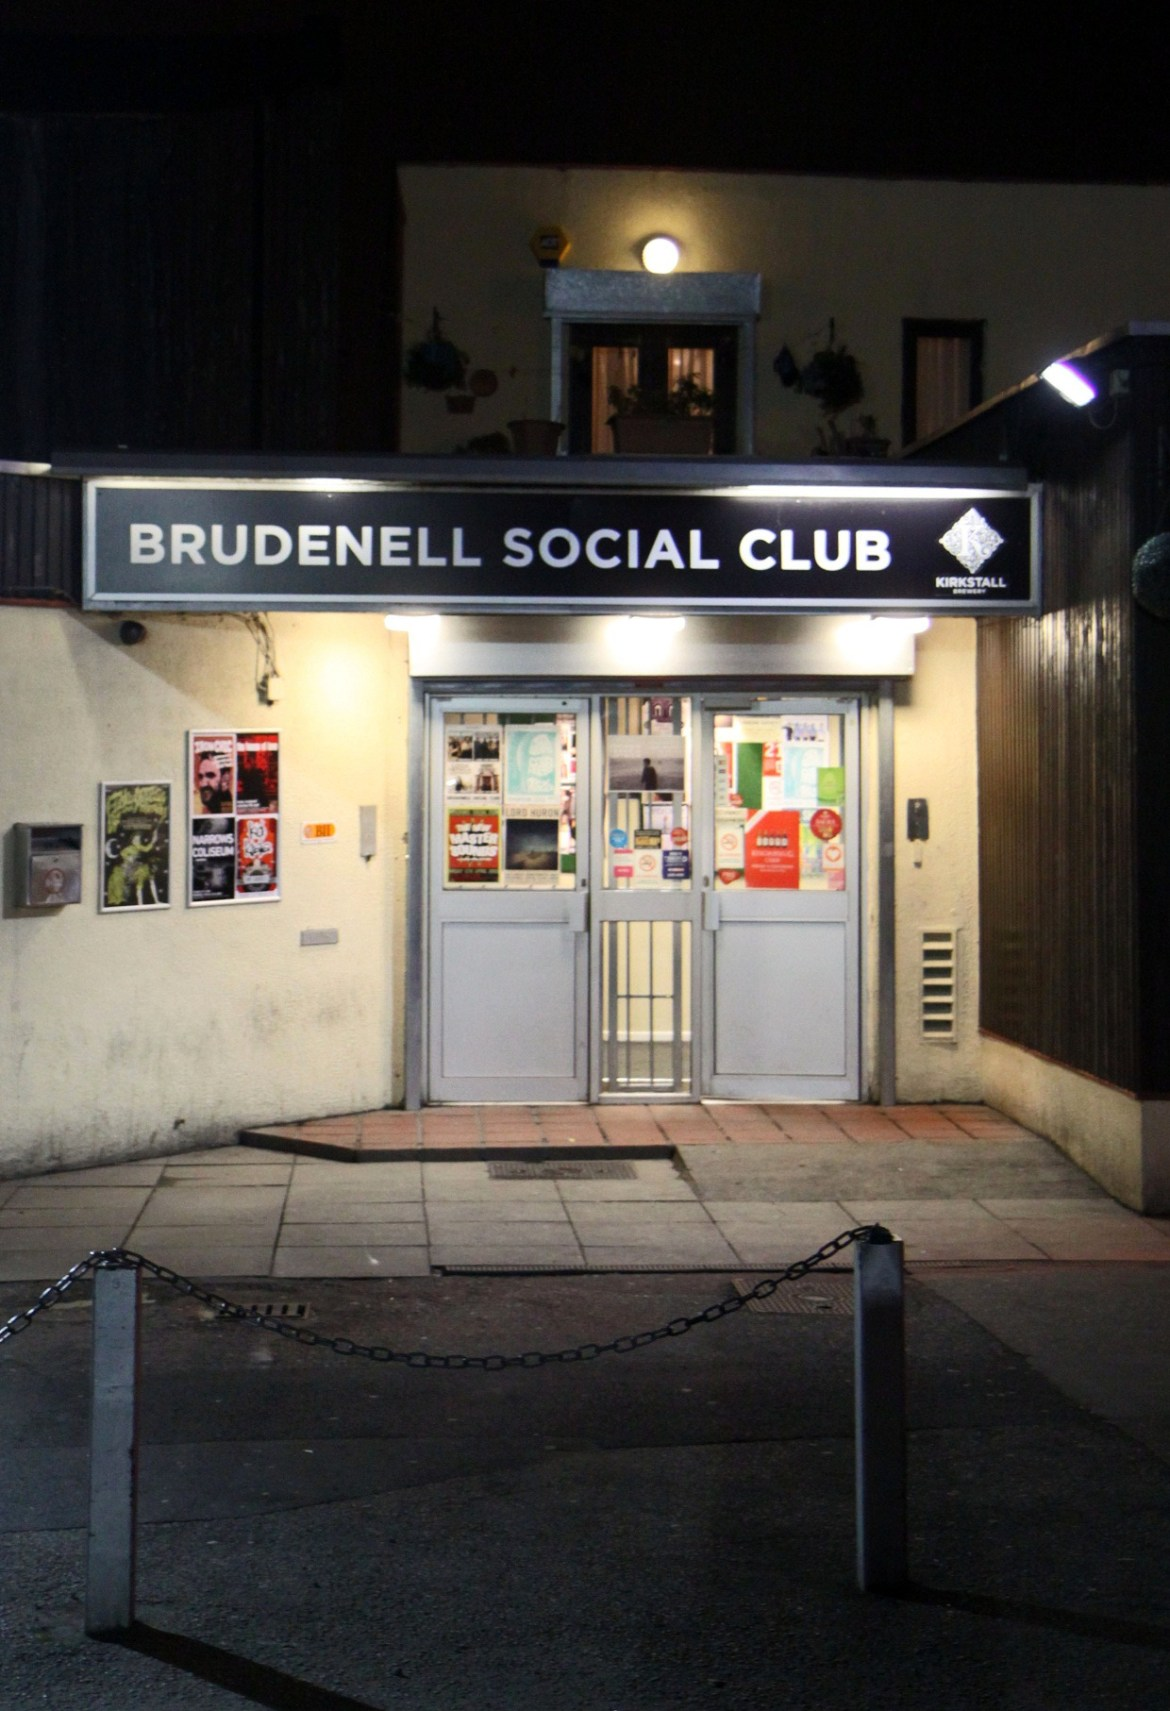 Ethan Johns, Marika Hackman & Ellen Smith – Brudenell Social Club, Leeds, 19th February 2013